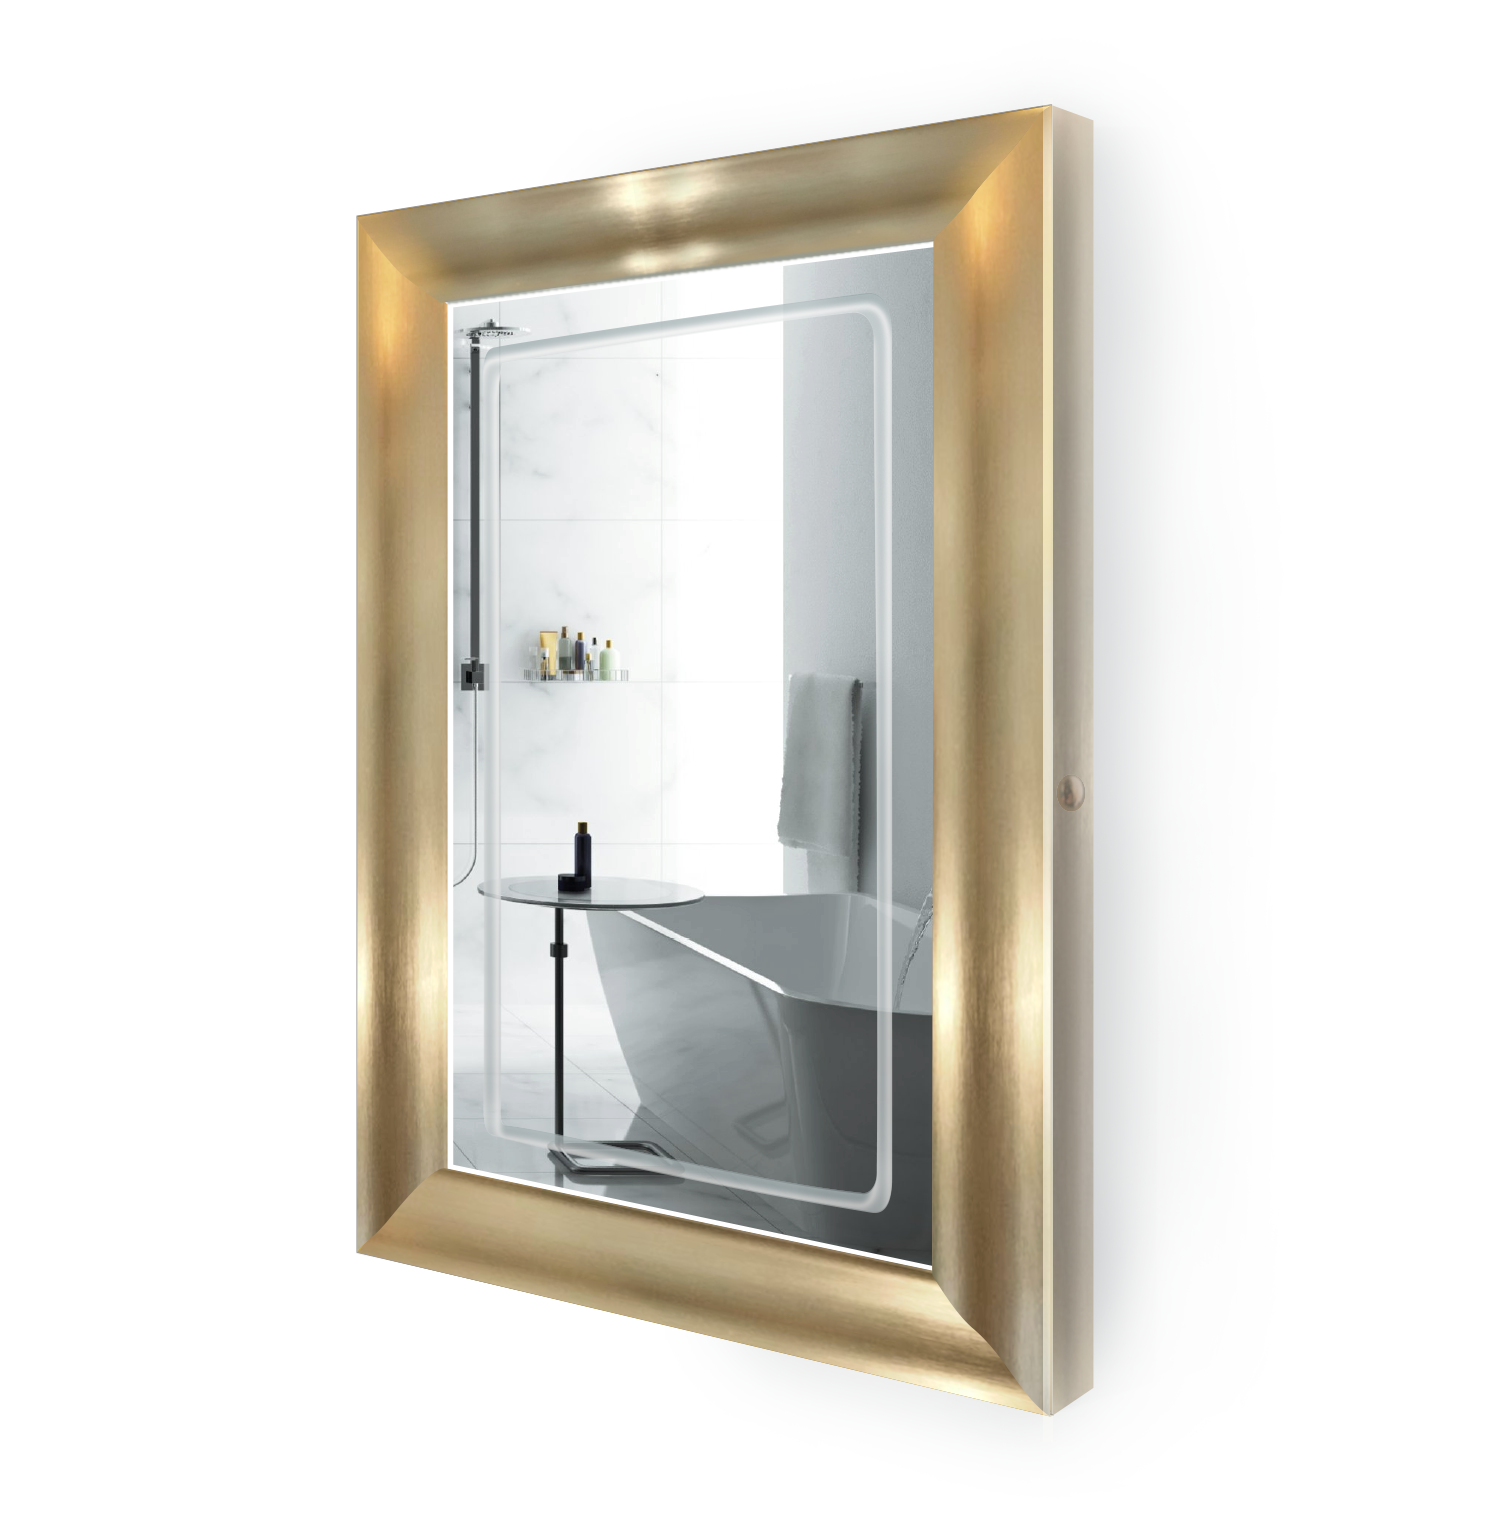 gold frame bathroom mirror led lighted 24 inch x 36 inch bathroom gold frame mirror 18530